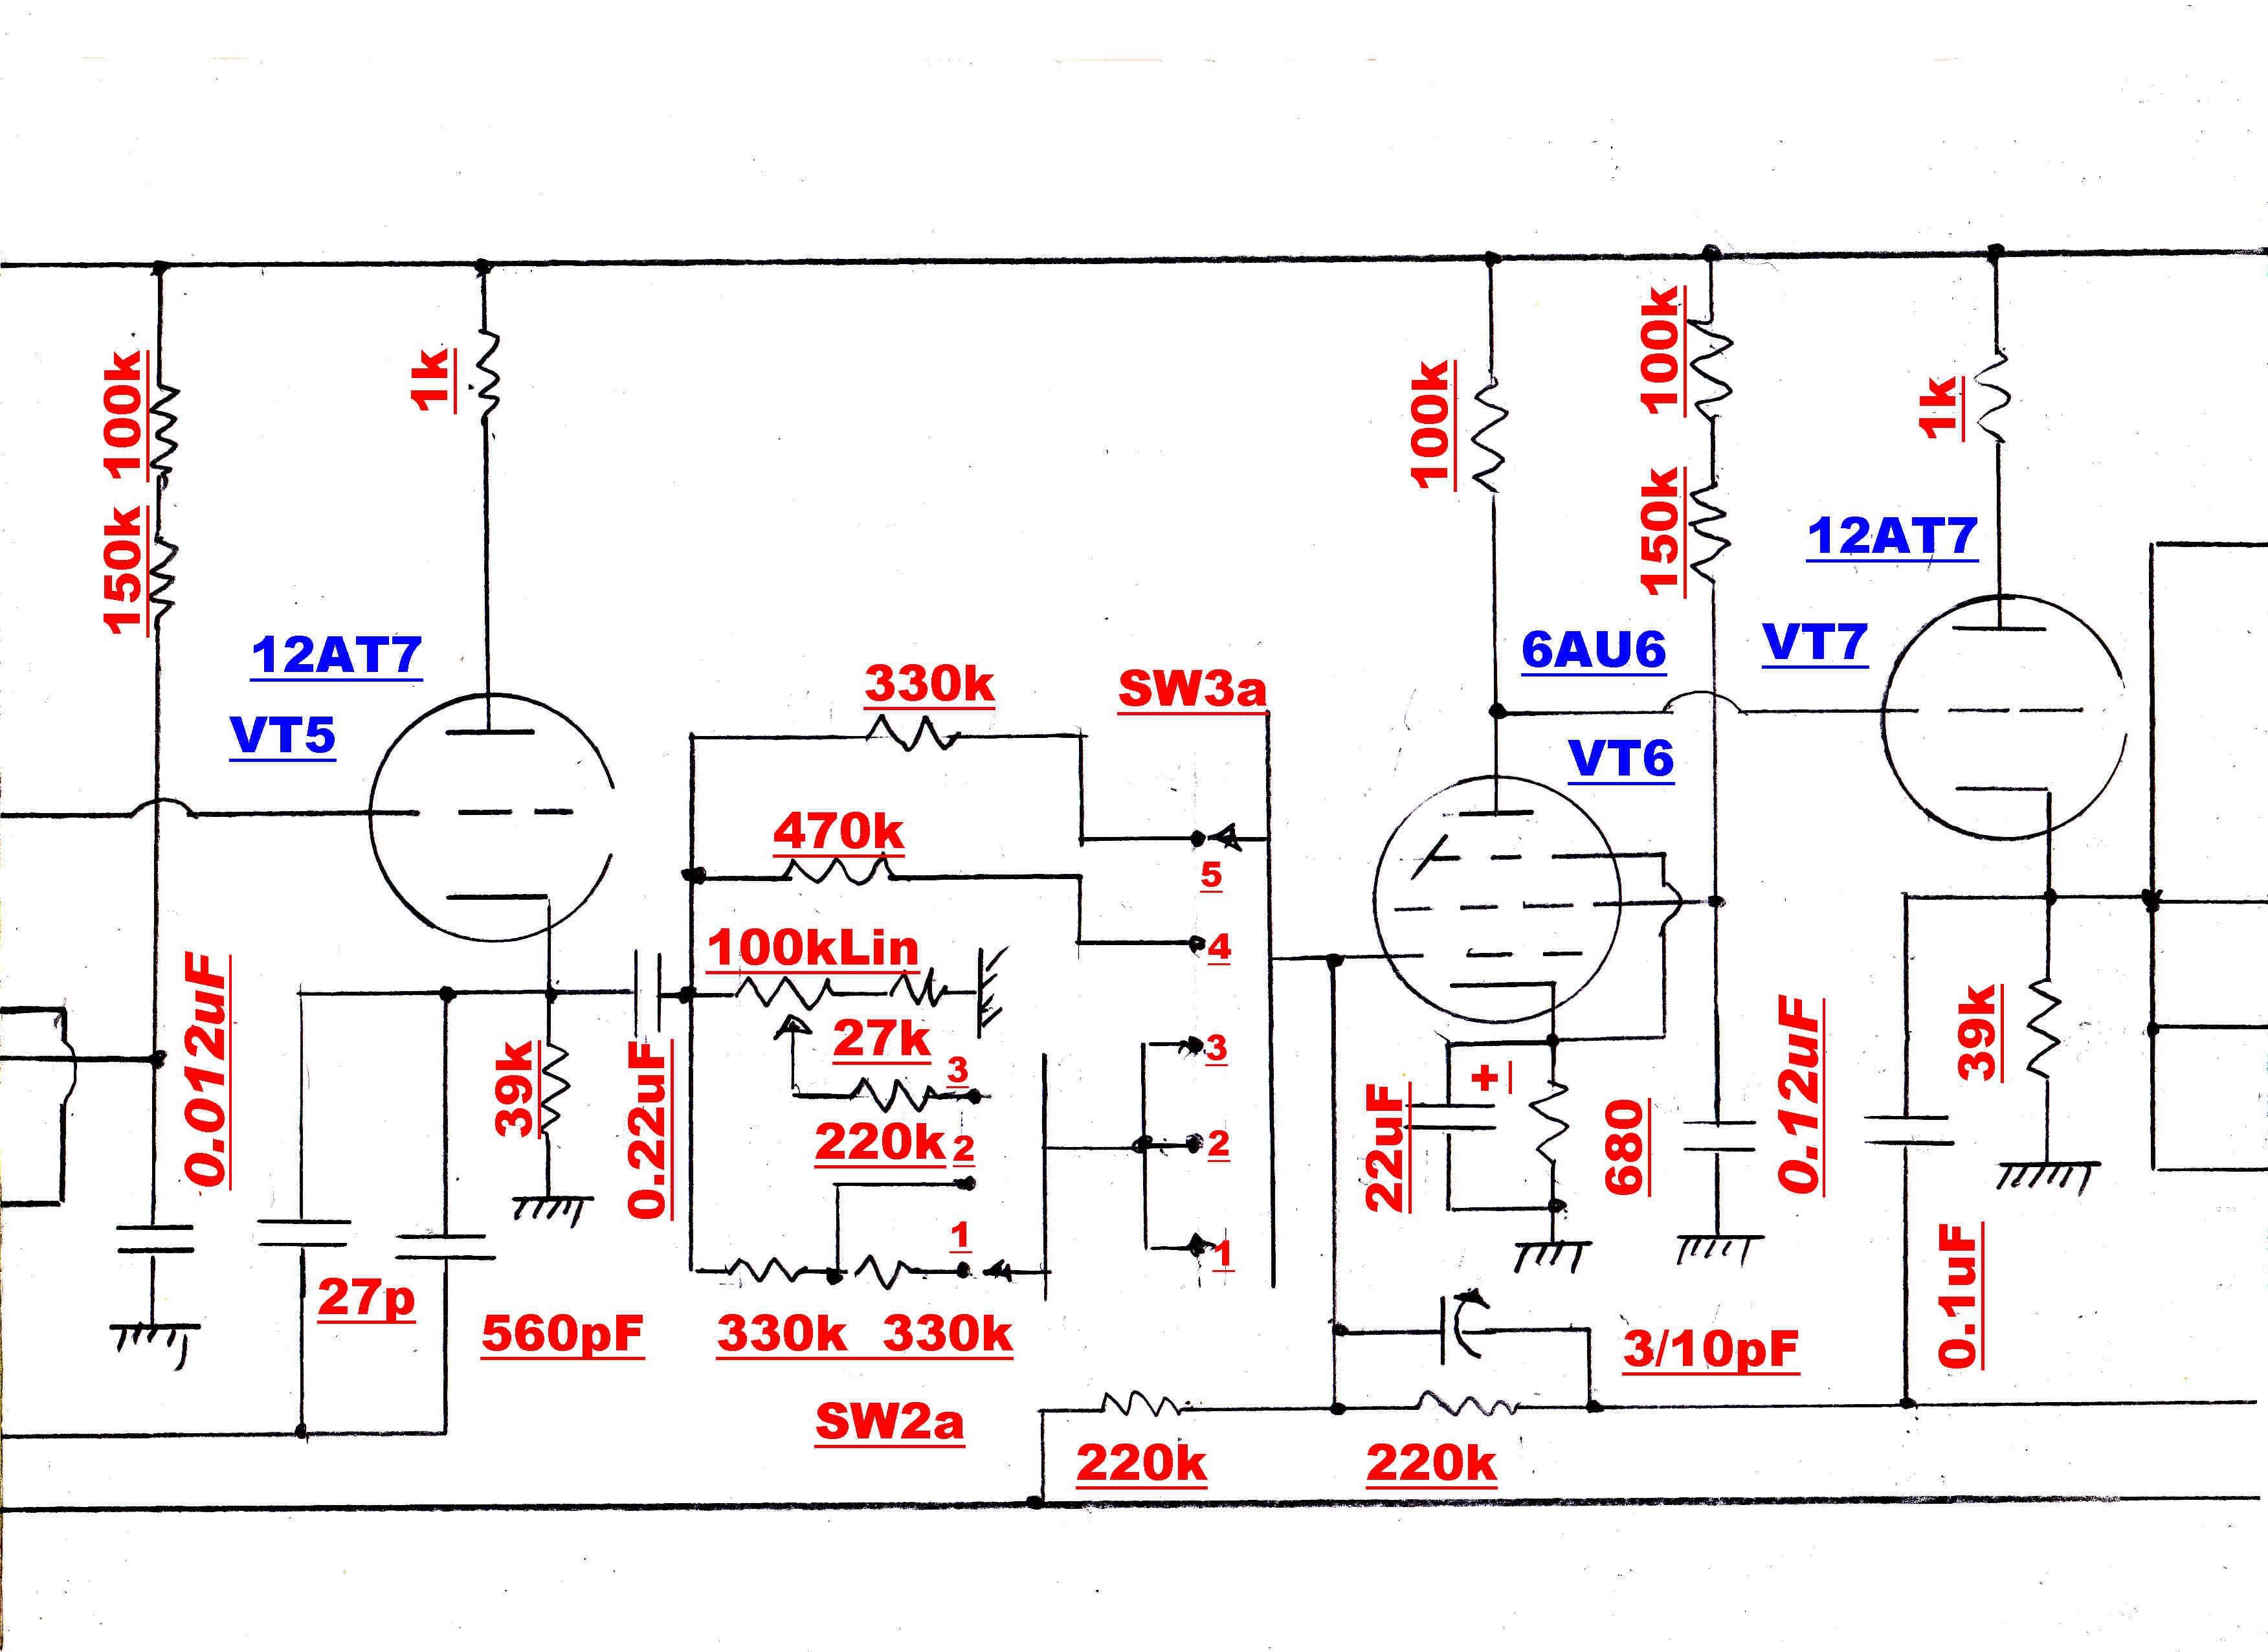 Amplitudemodulation Frequency Changer Circuit The Chosen For Calculation Is 250hz Bass Turnover Ease Of Reference Full Diagram Repeated